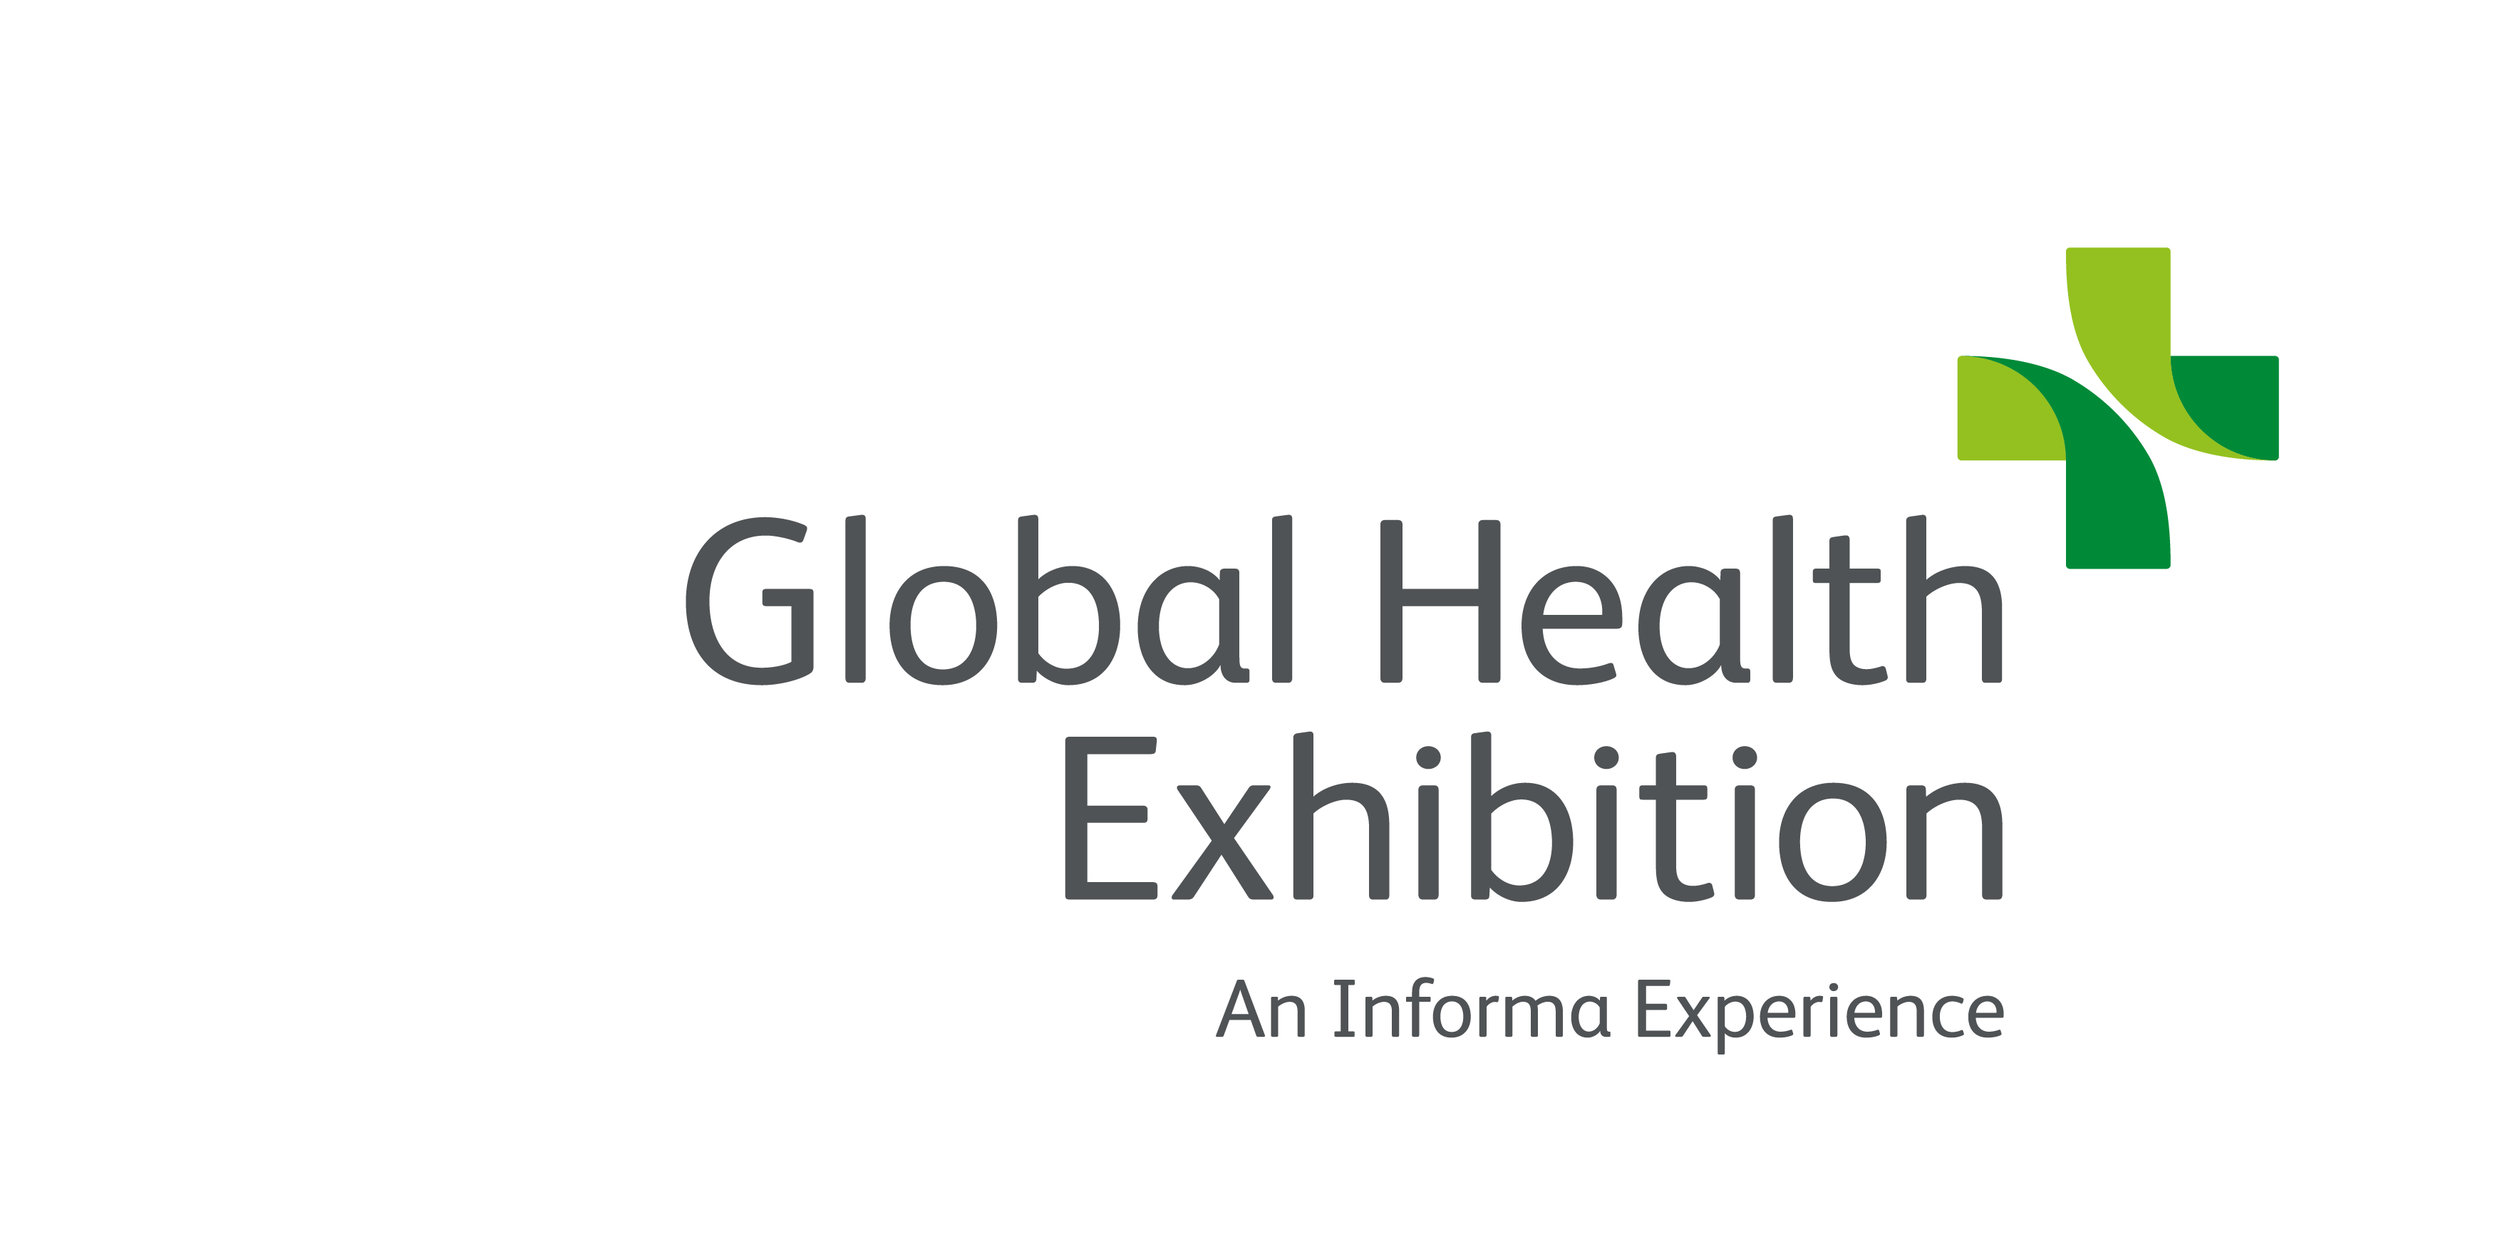 Global_Health_Exhibition_RGB.jpg